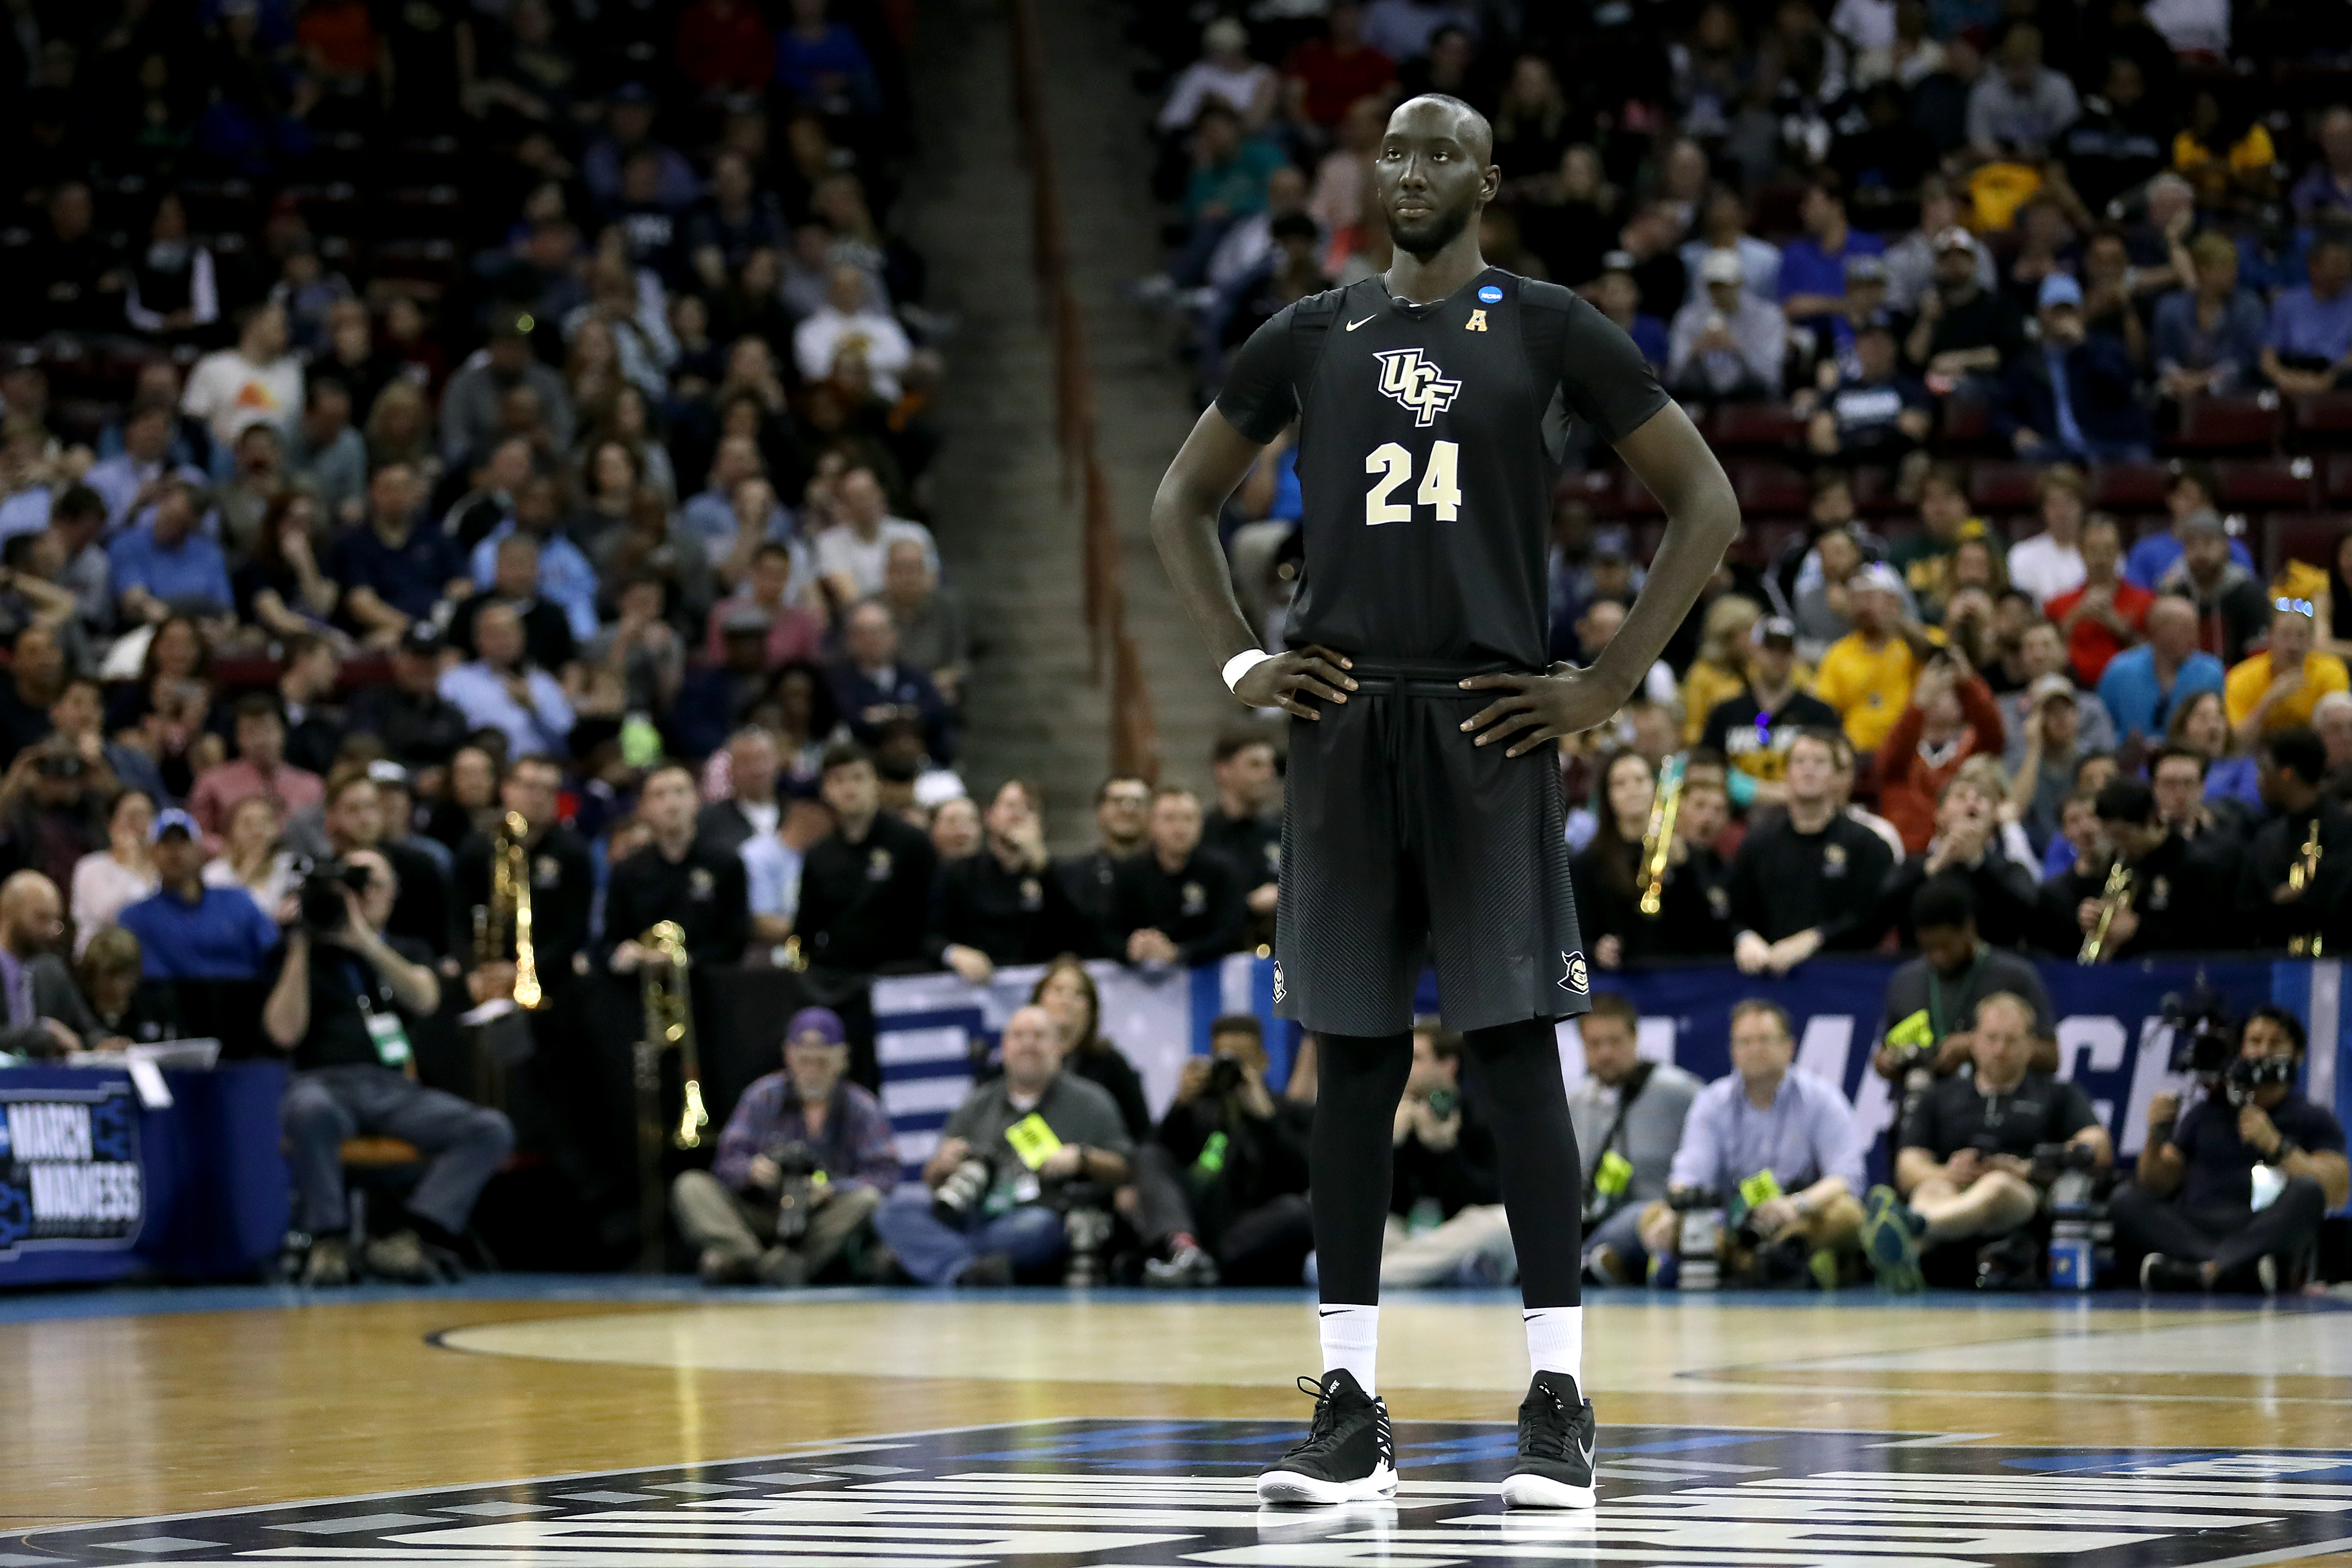 Duke vs. UCF: Zion Williamson vs. Tacko Fall is the NCAA tournament matchup we deserve